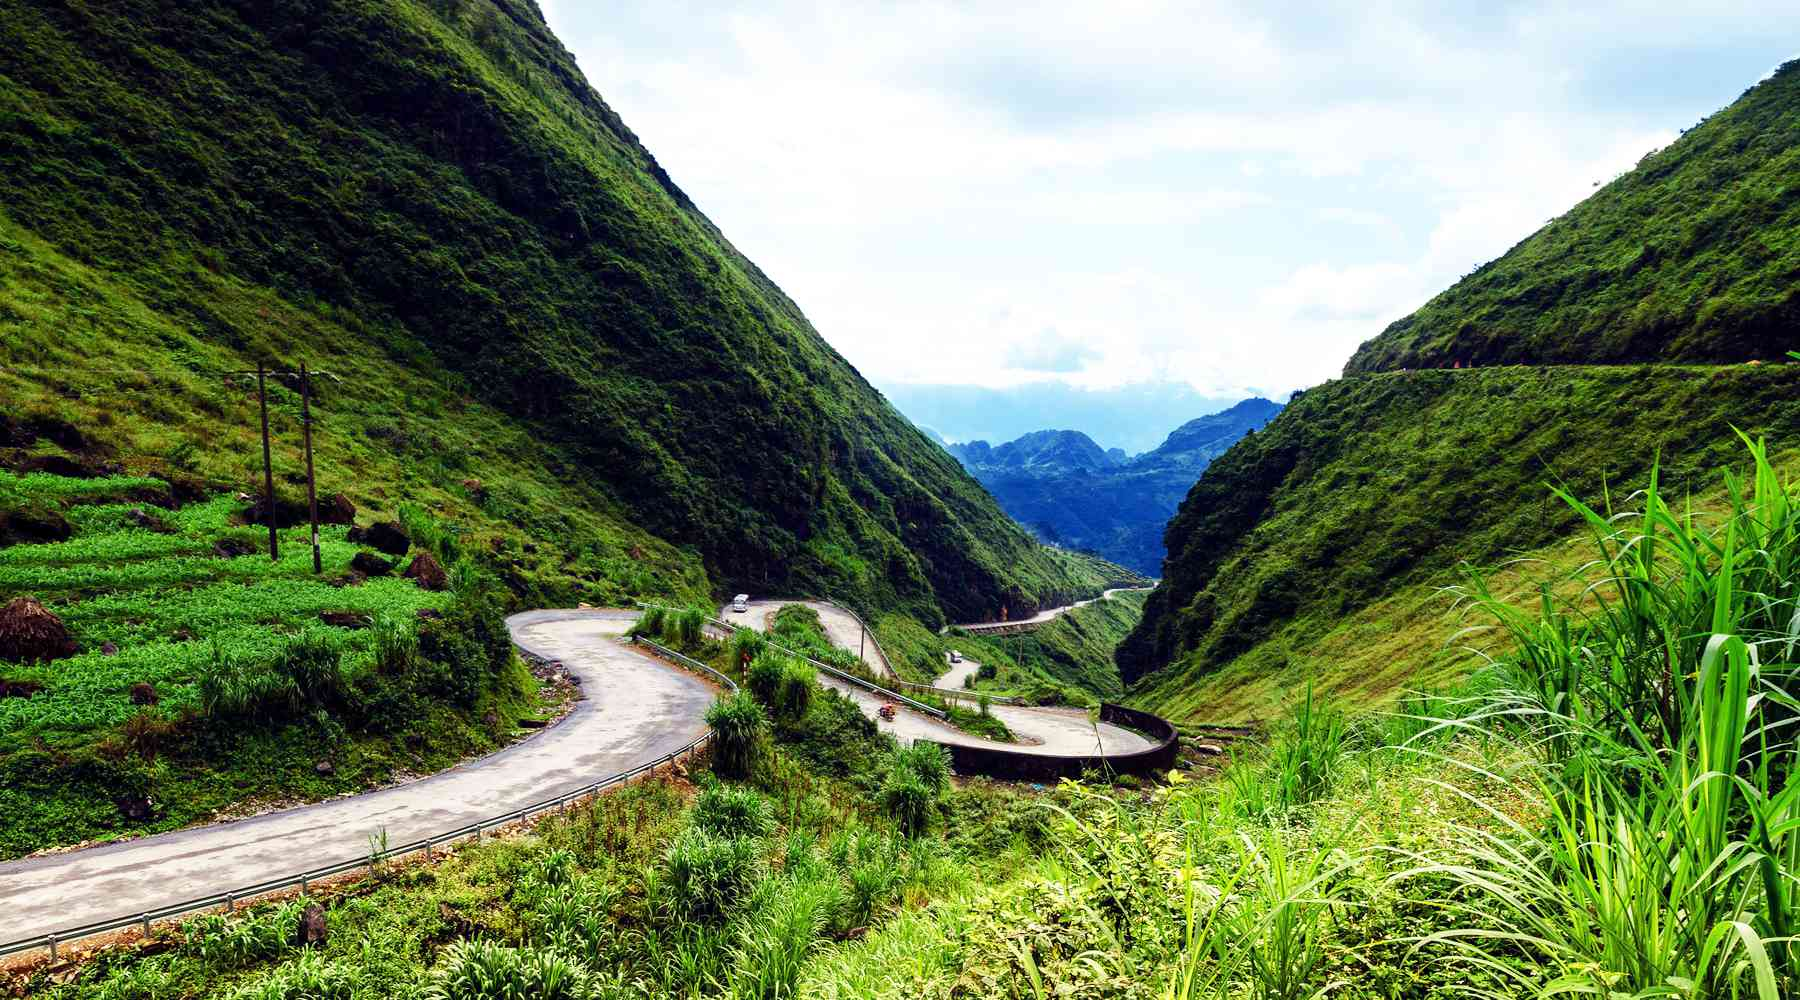 Tham Ma Pass in Ha Giang